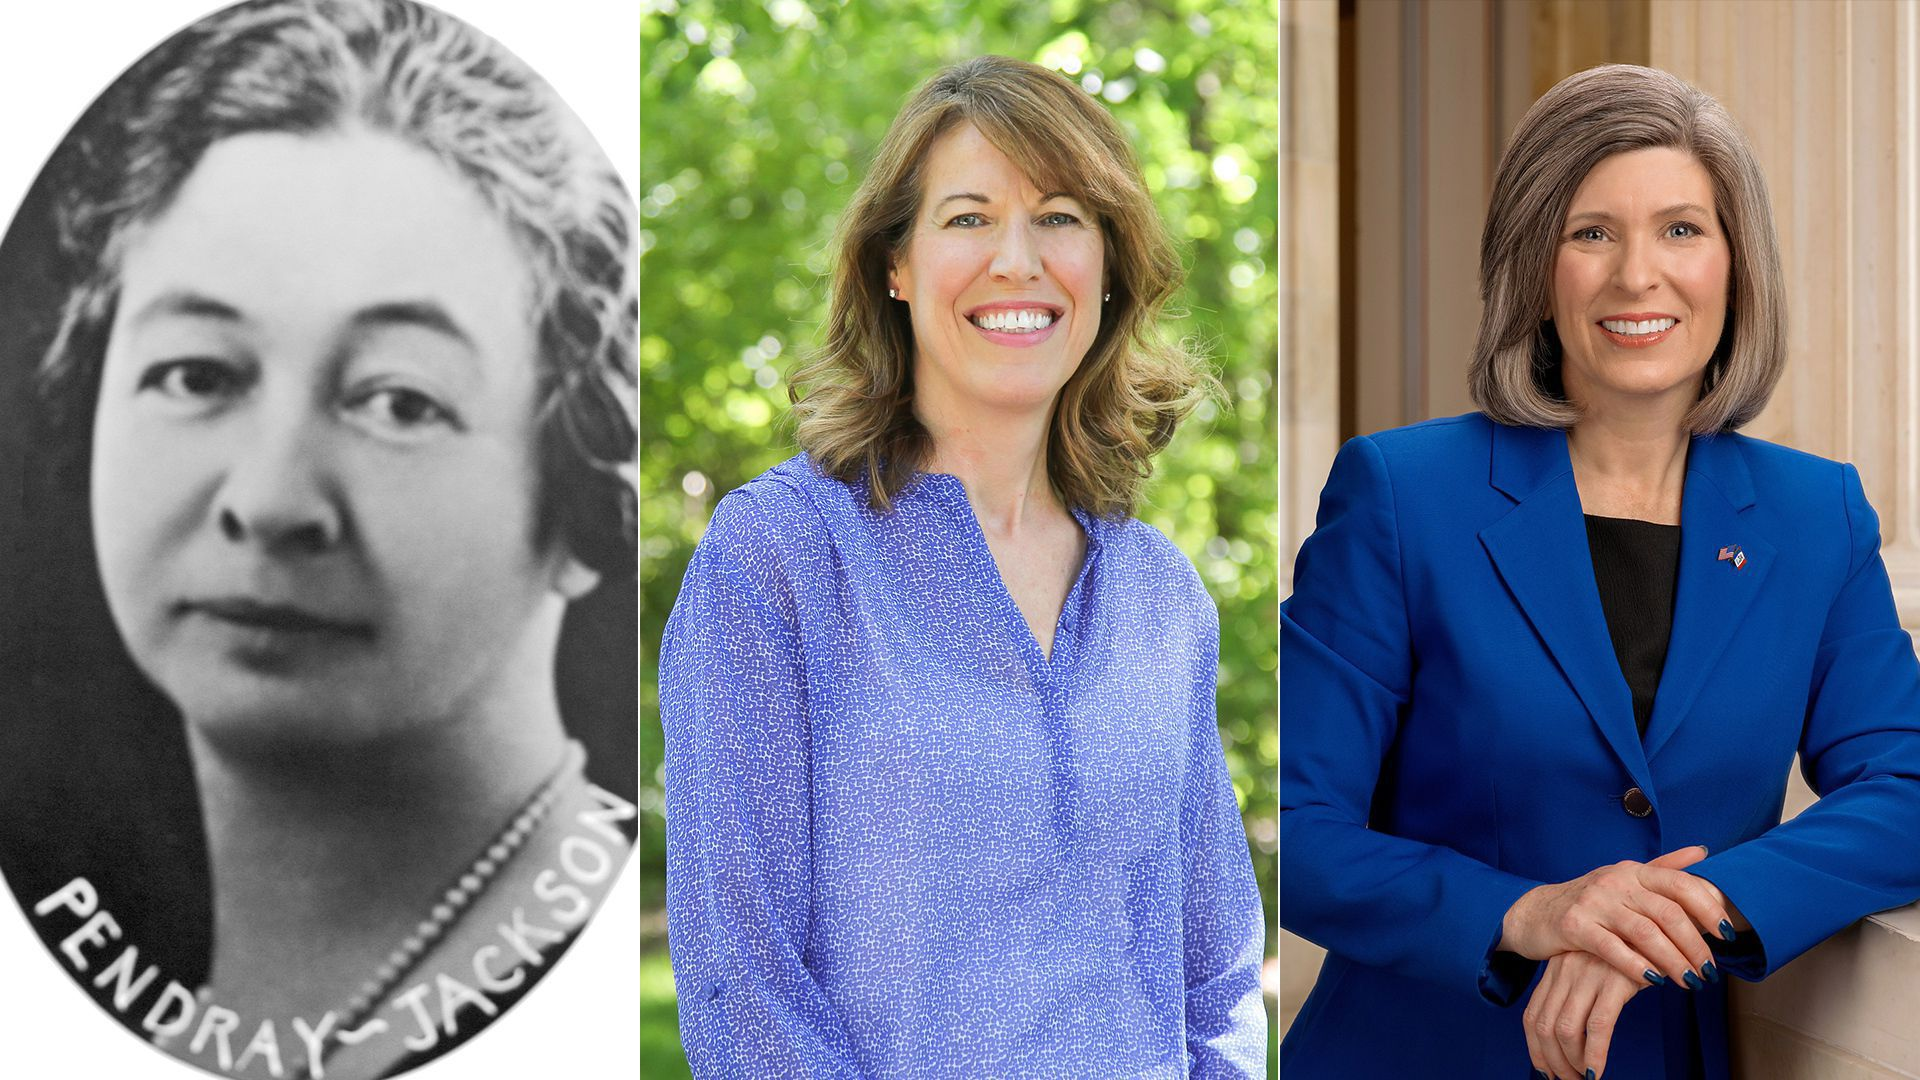 Collage picture of Carolyn Campbell Pendray, Rep. Cindy Axe and Sen. Joni Ernst